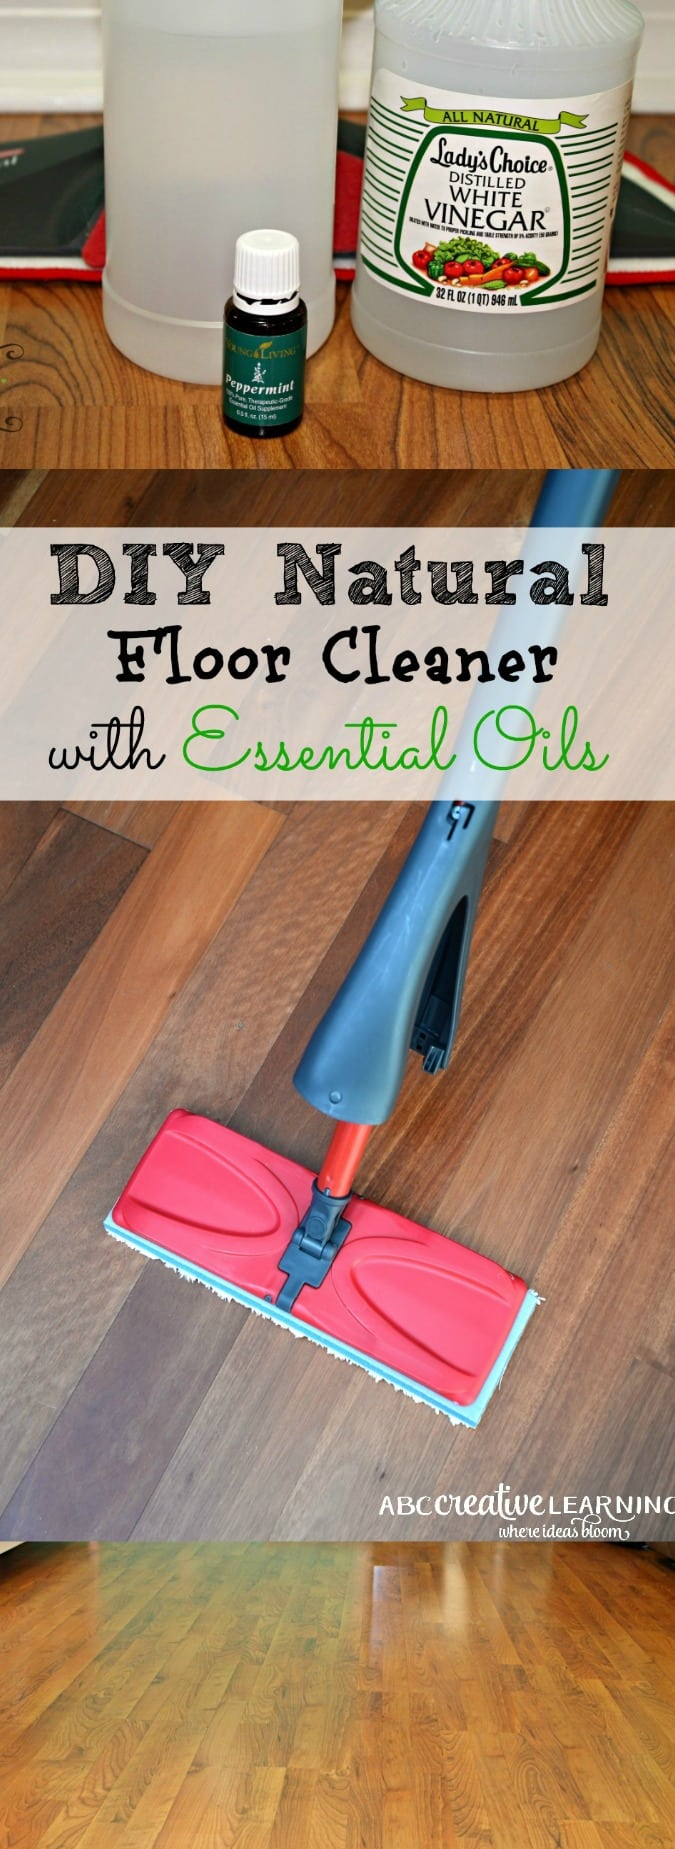 Floor Cleaner Using Essential Oils